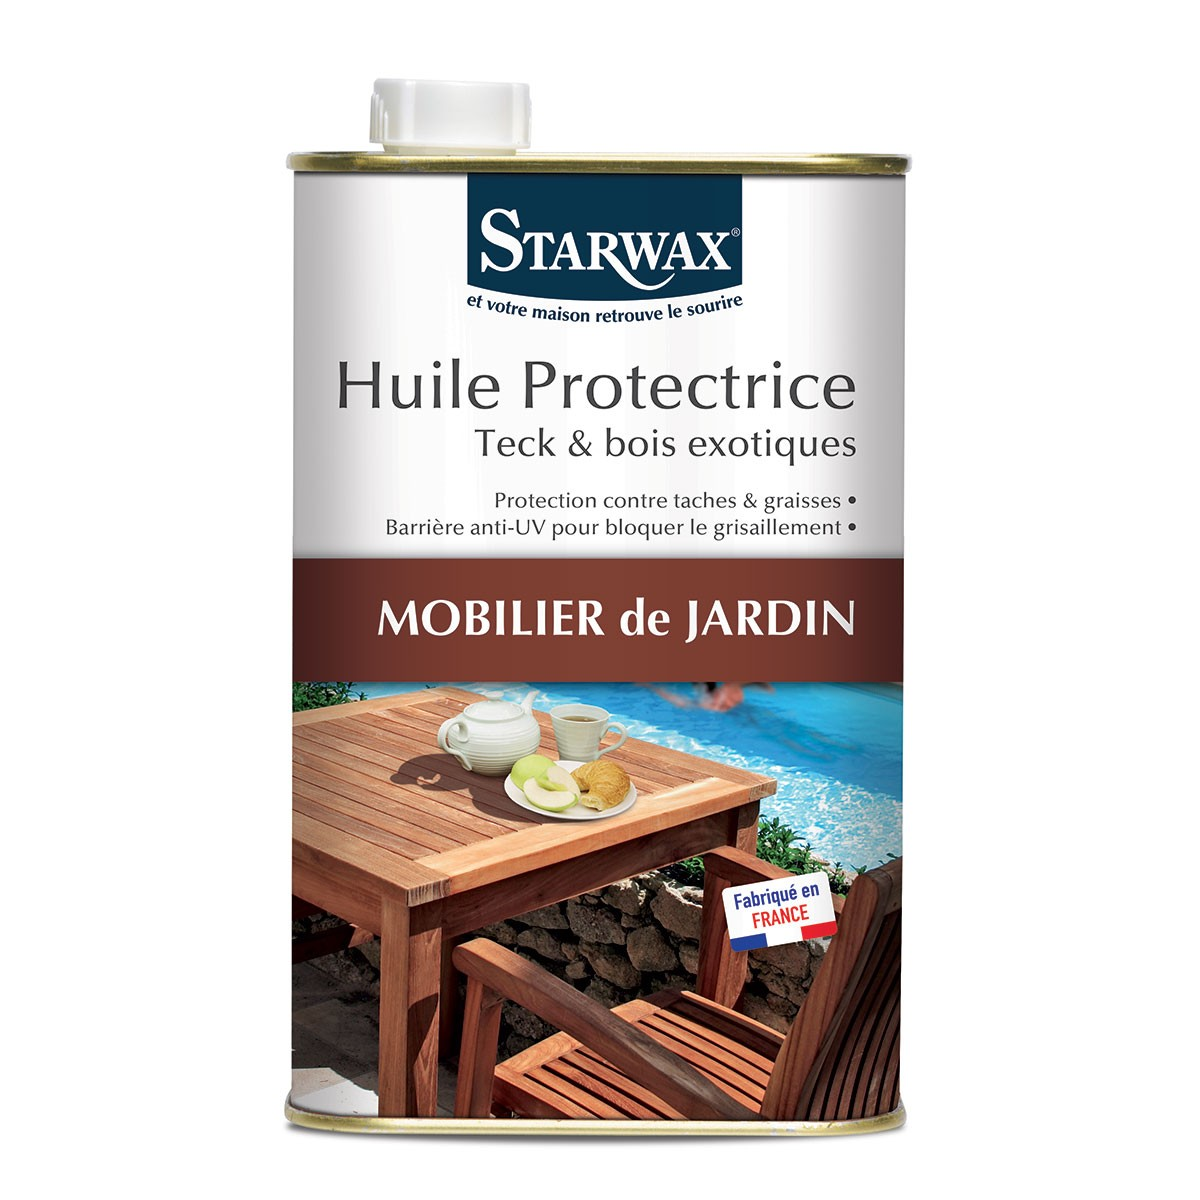 huile protectrice teck et bois exotiques 1l starwax starwax. Black Bedroom Furniture Sets. Home Design Ideas